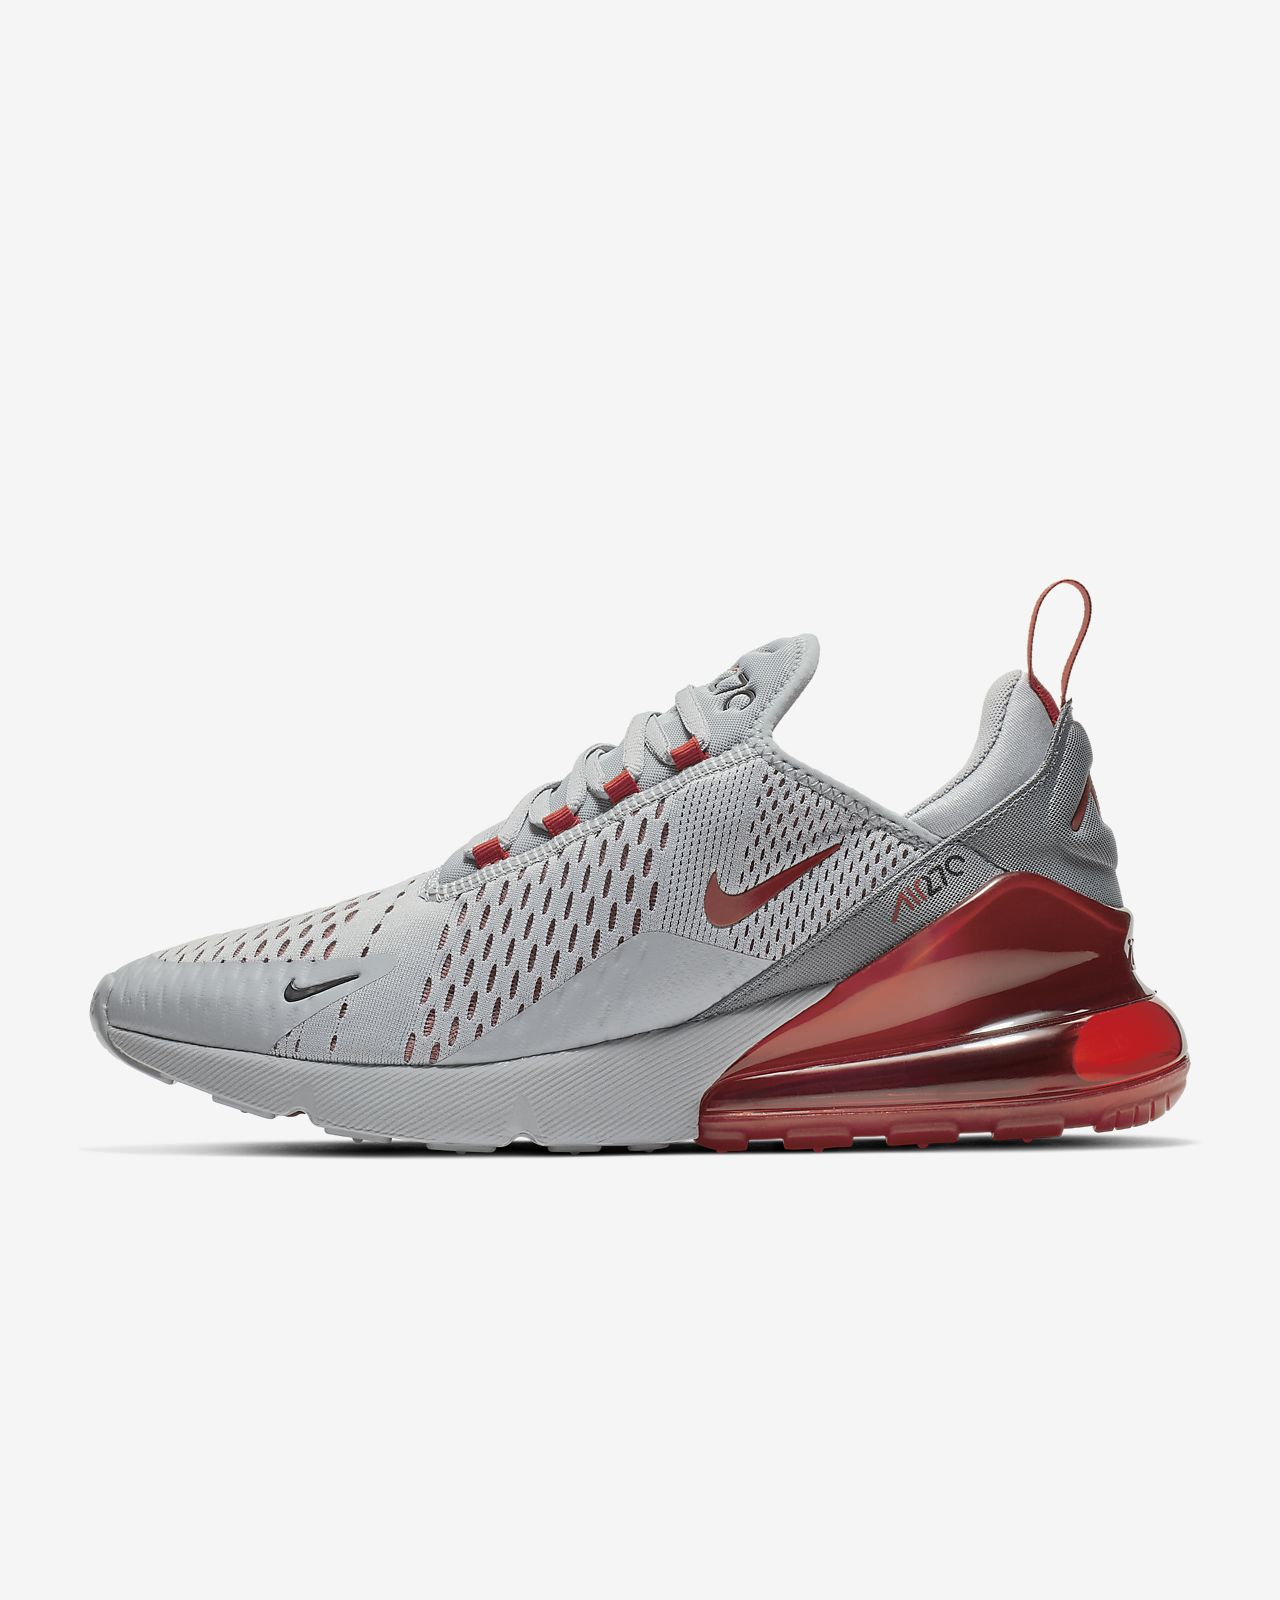 meet 7c657 ec6e5 Men s Shoe. Nike Air Max 270